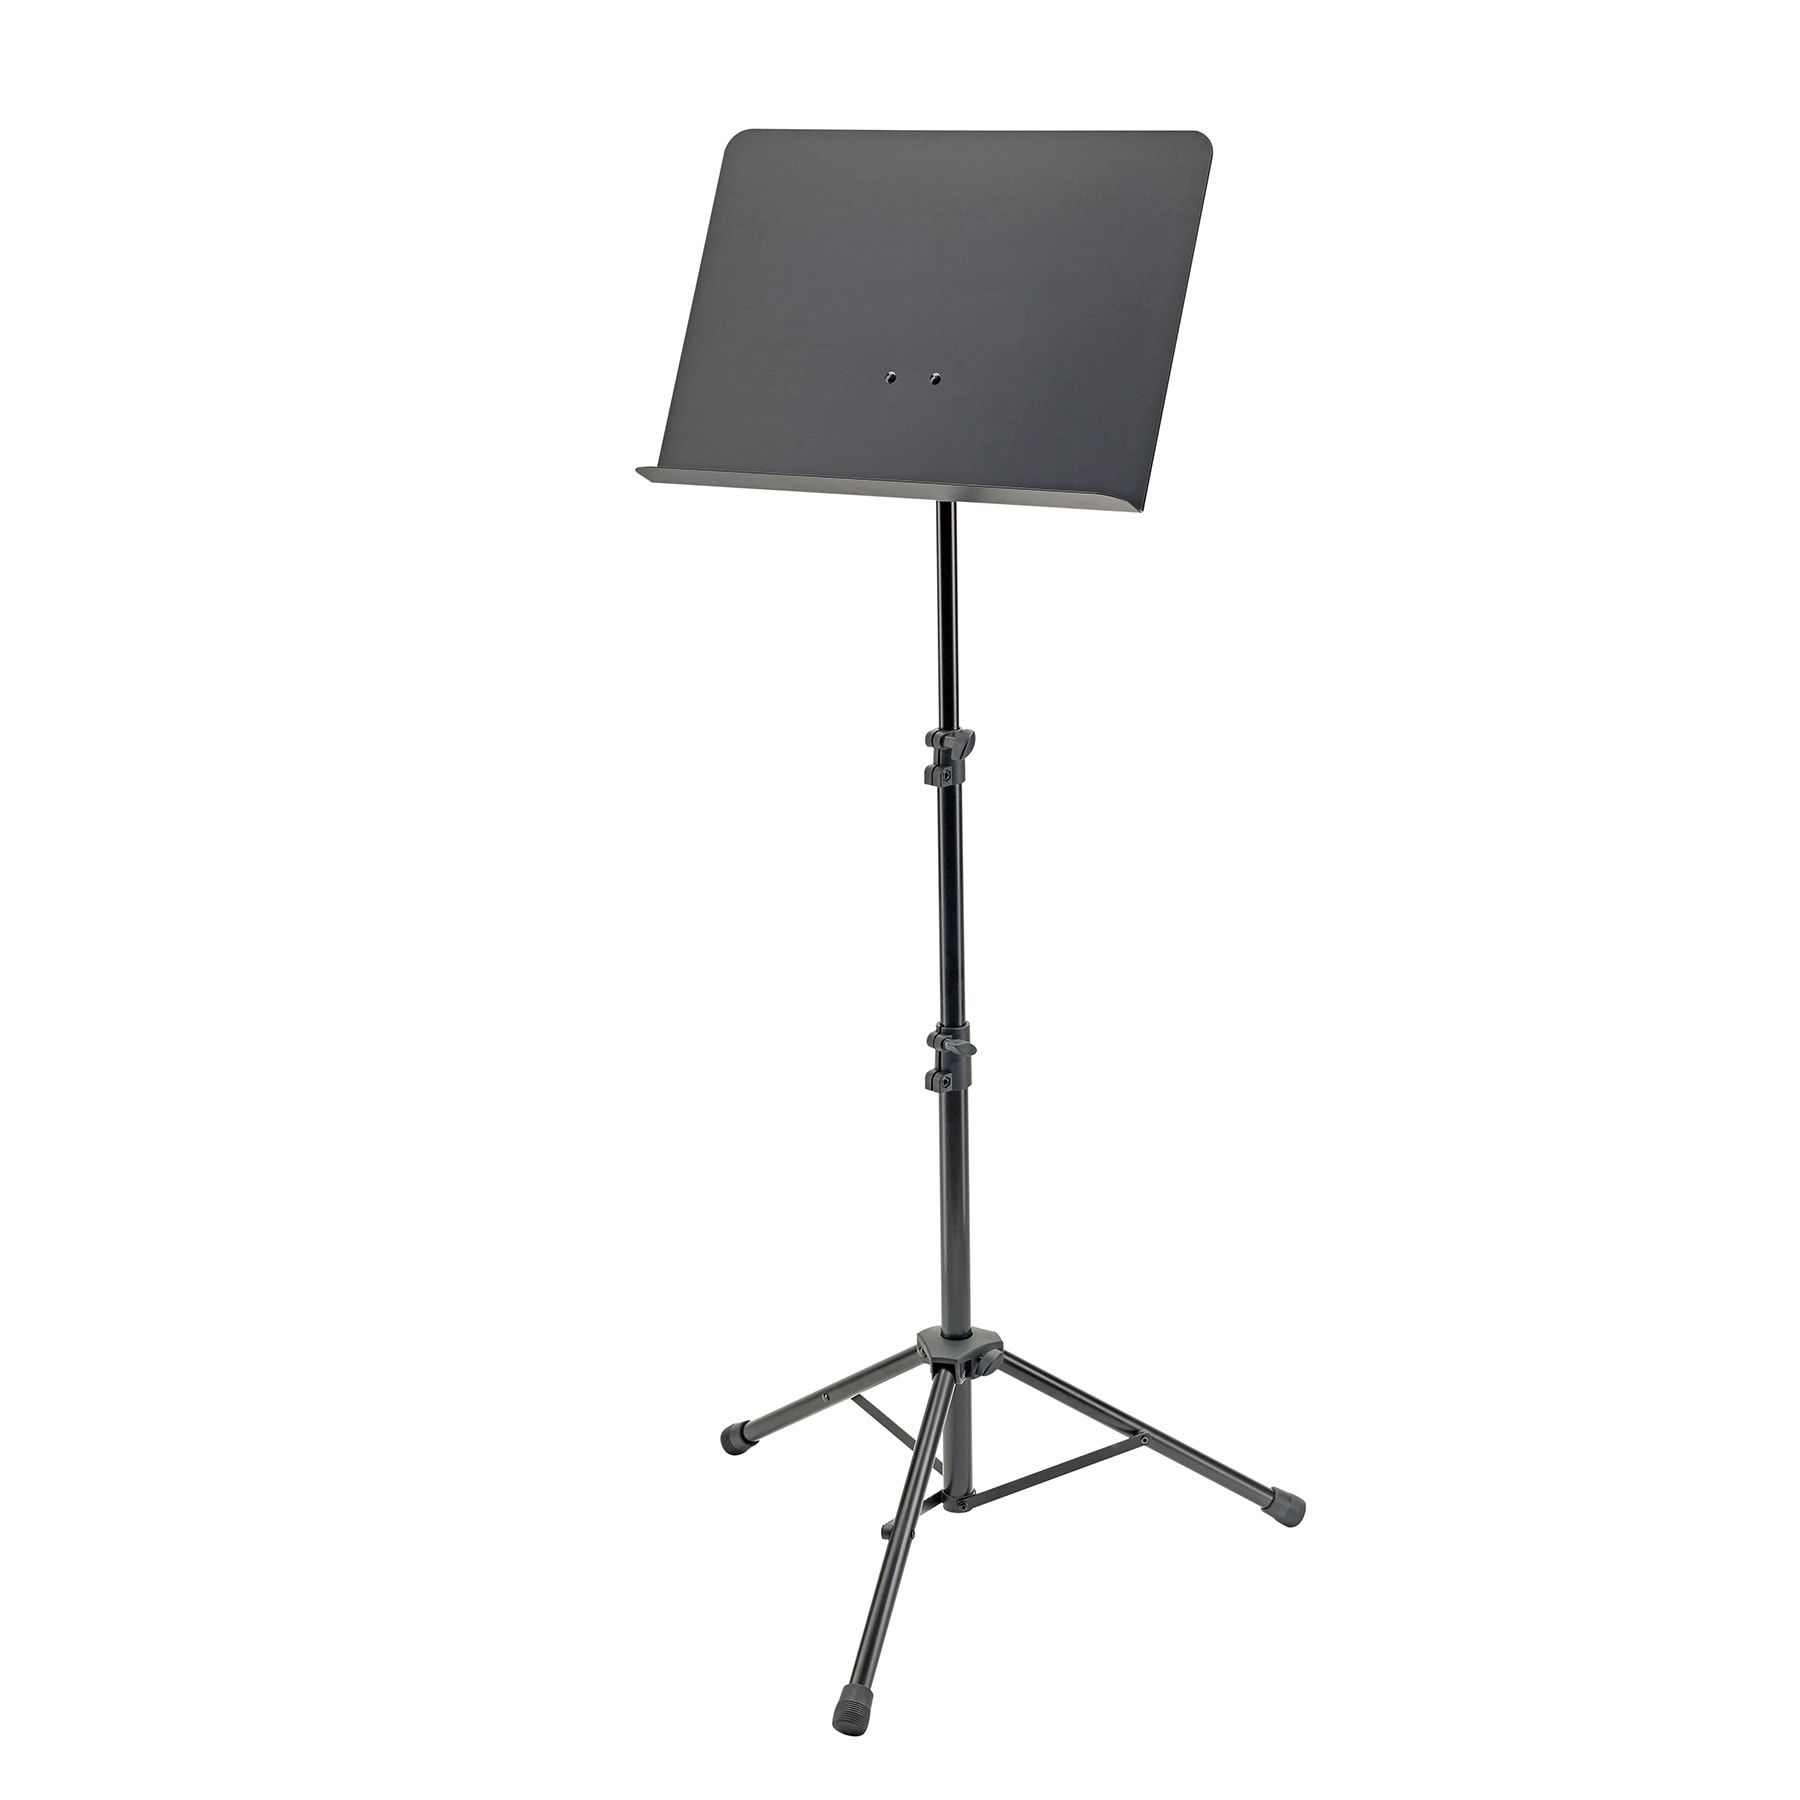 KM11870 - Orchestra music stand